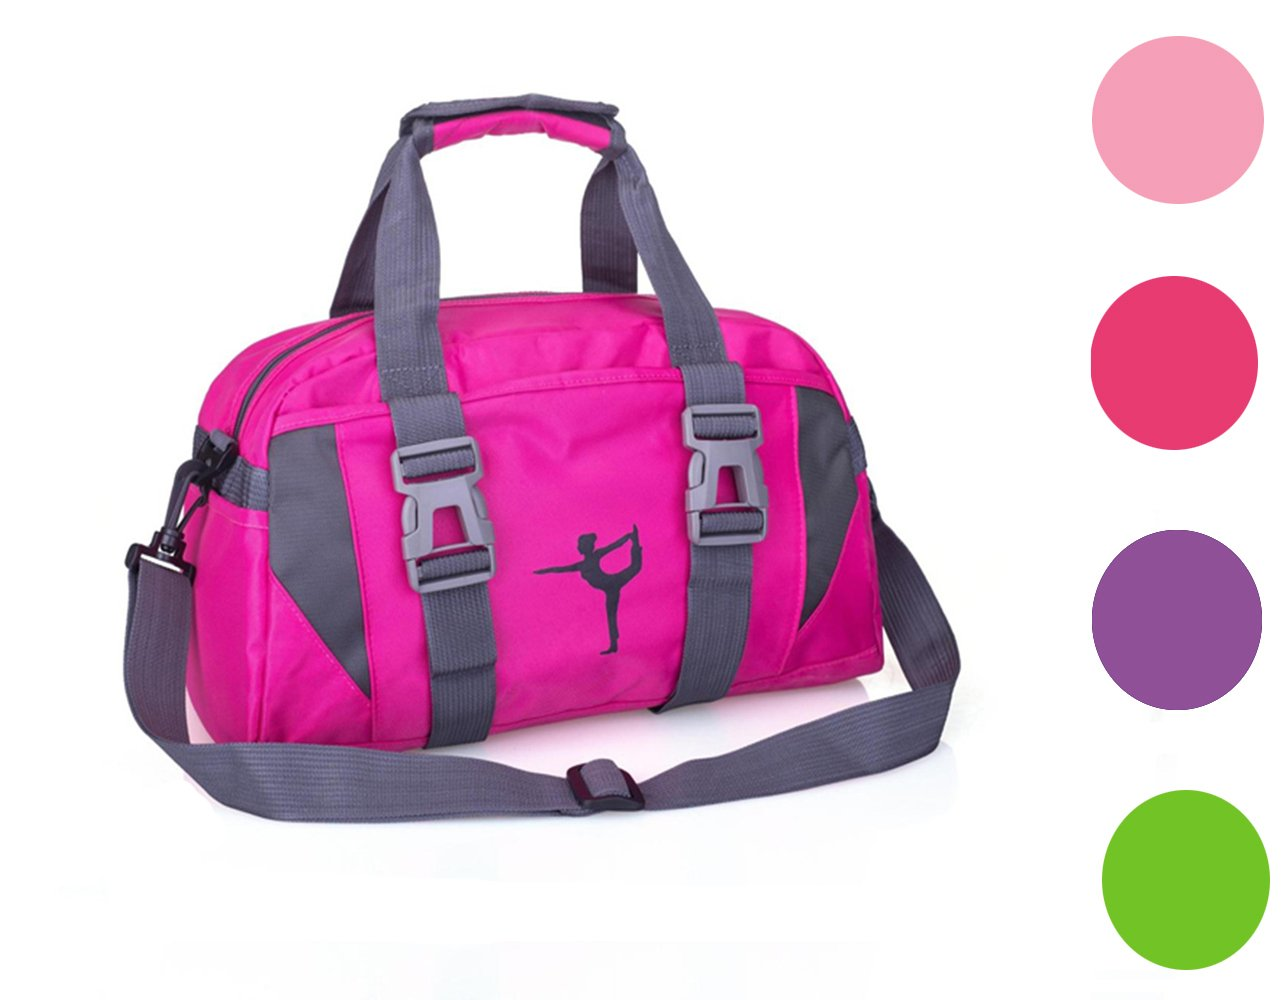 2017snow Small/Large Dance Duffle Bag for Girls Sport Gym Bags for Women Yoga Bag (Green)